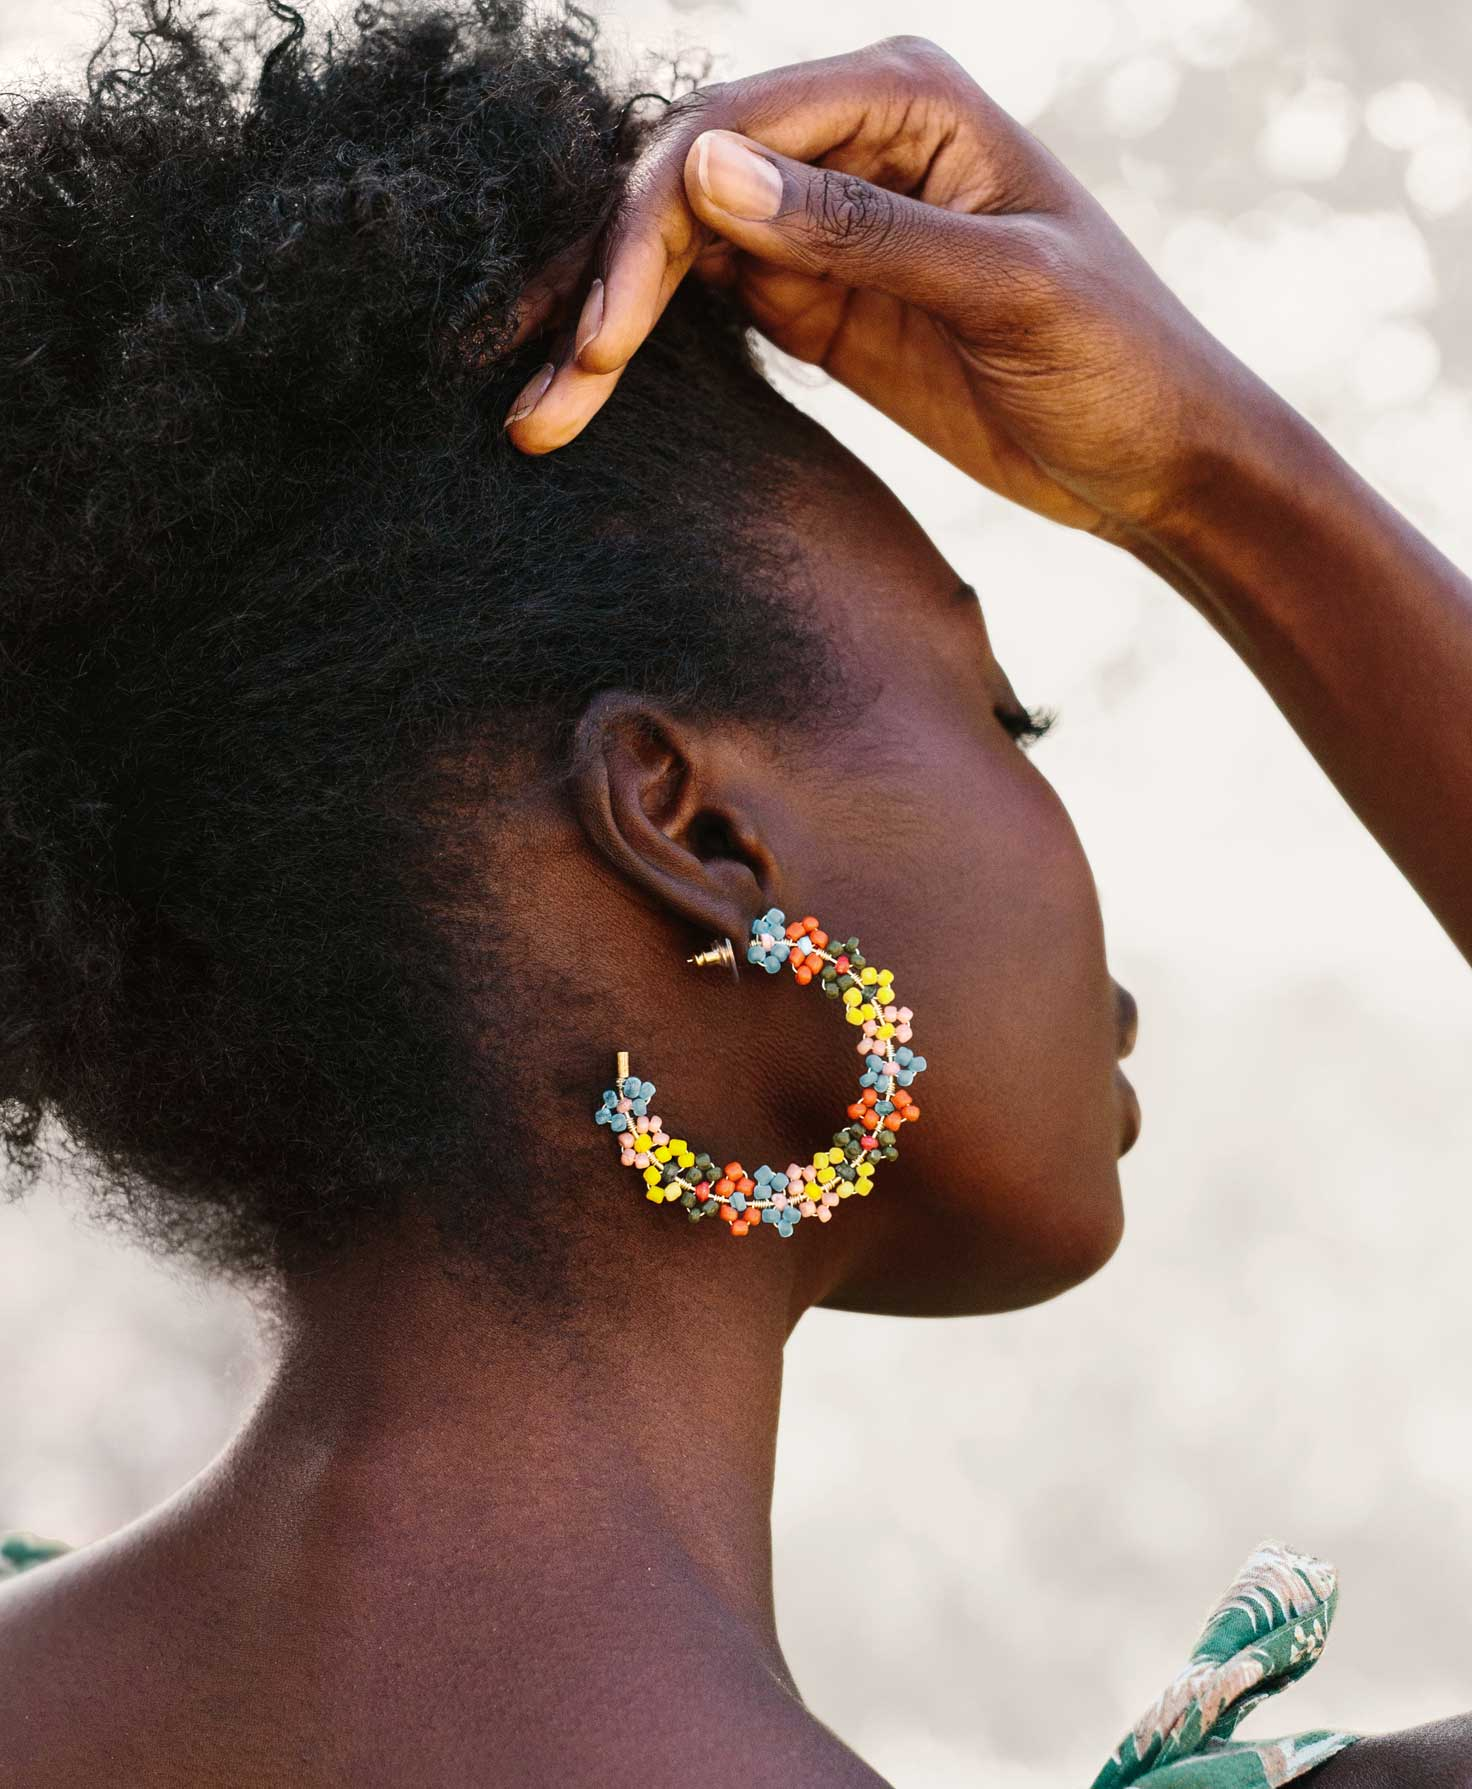 A model is shown with the side of her face towards the camera. The large silhouette and vibrant colors of her Lantana Hoops make for a bright statement.